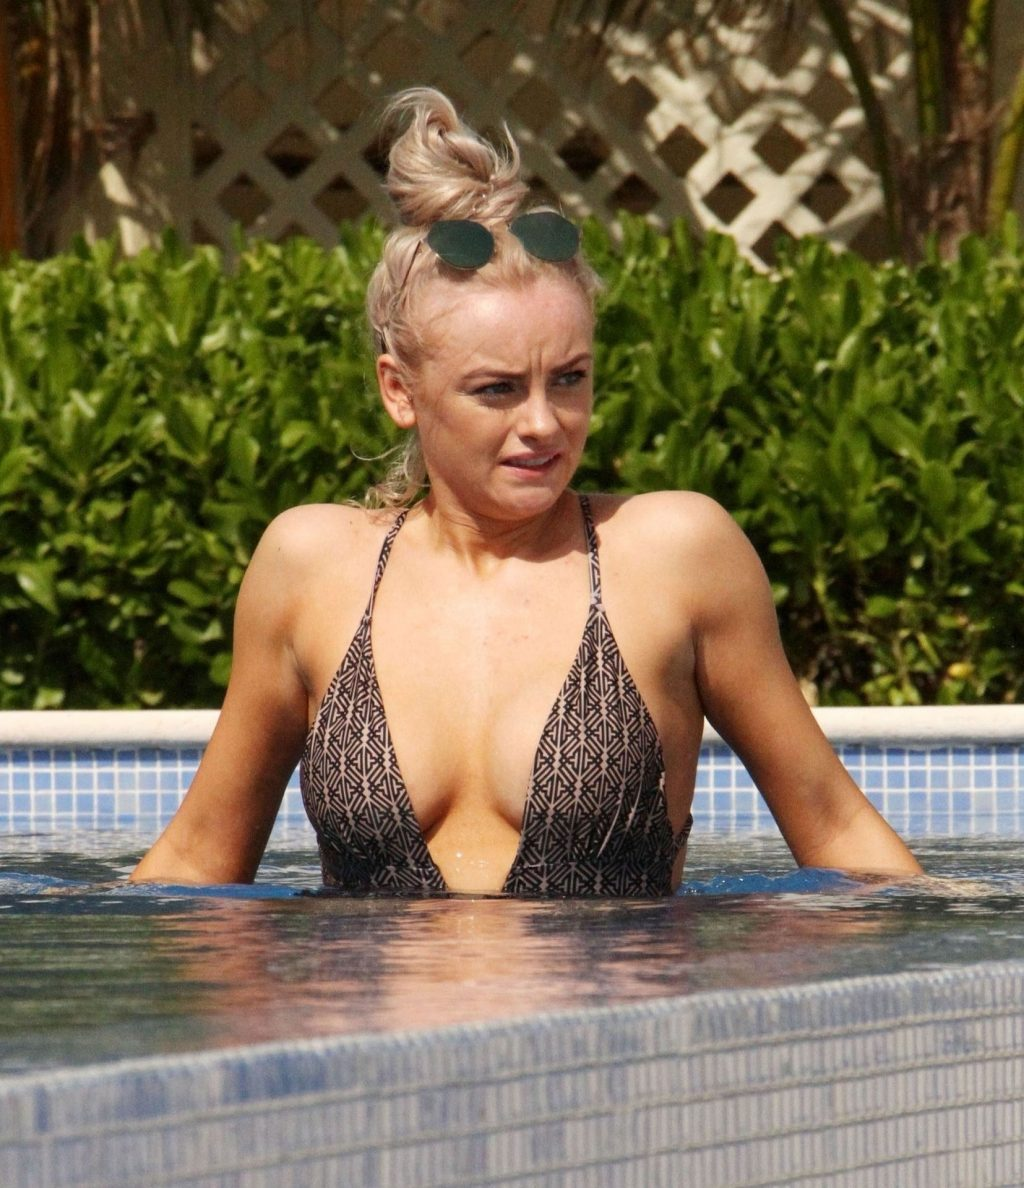 Katie McGlynn Looks Sensational Showing Off Her Sexy Curves (19 Photos)